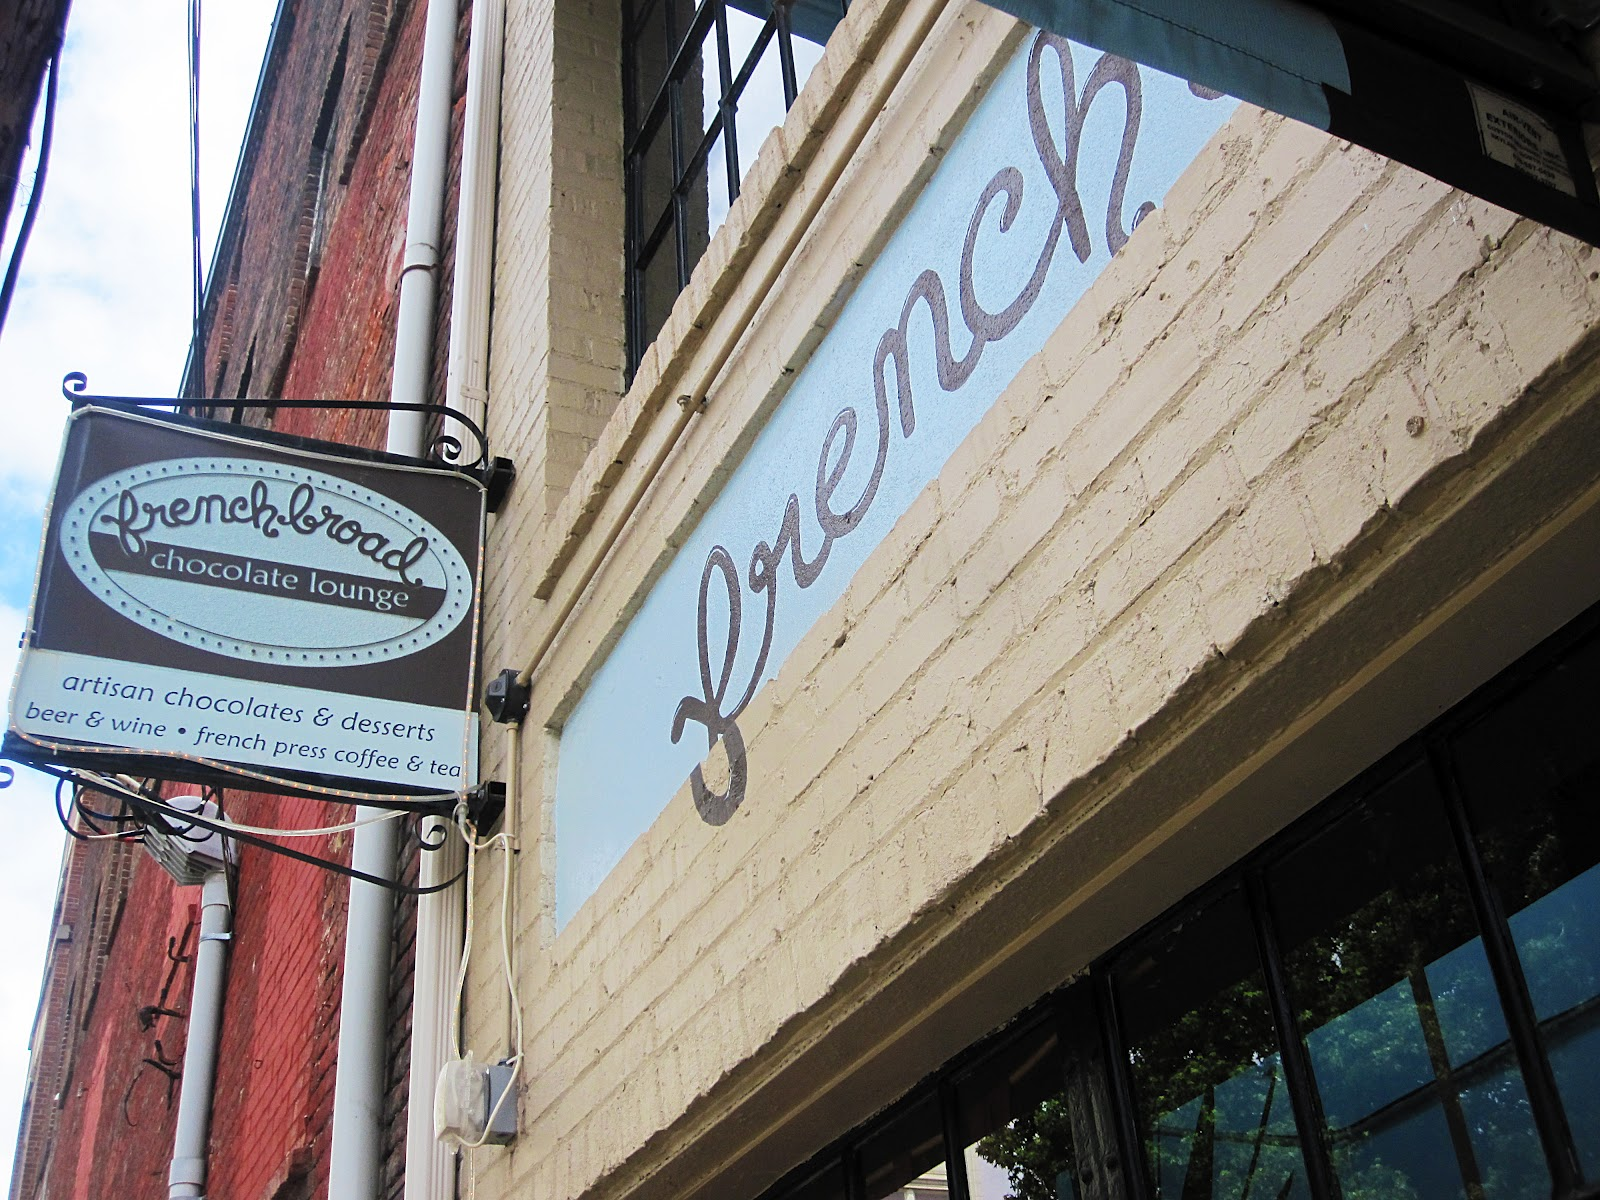 Zest! Chocolat: Chocolate Shop Review-French Broad Chocolate Lounge